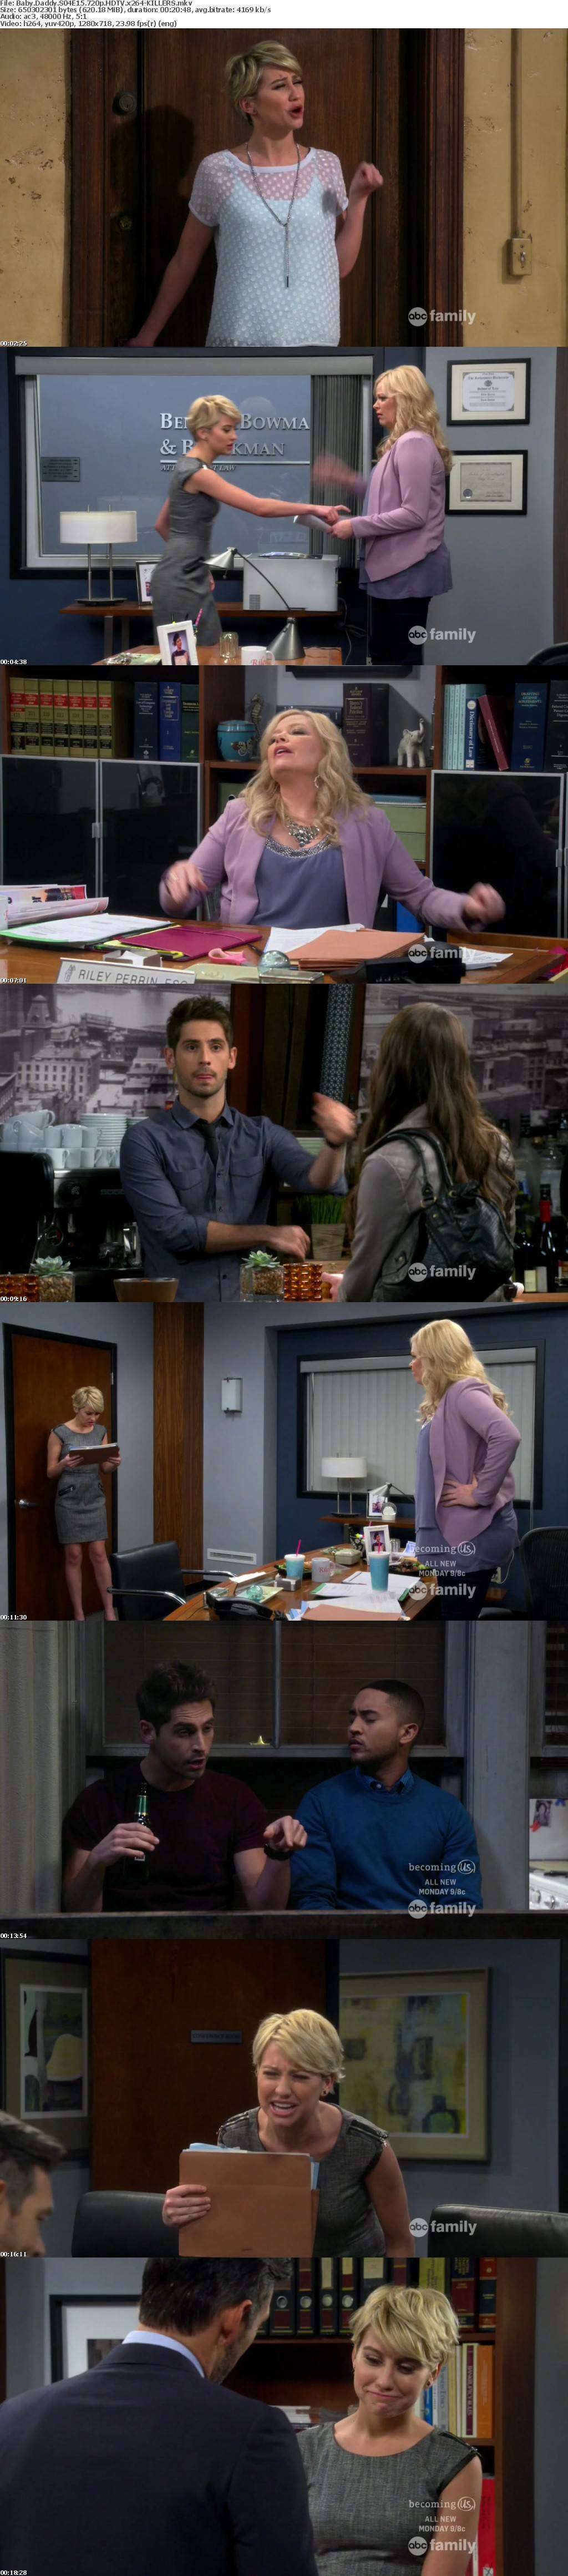 Baby Daddy S04E15 720p HDTV x264-KILLERS